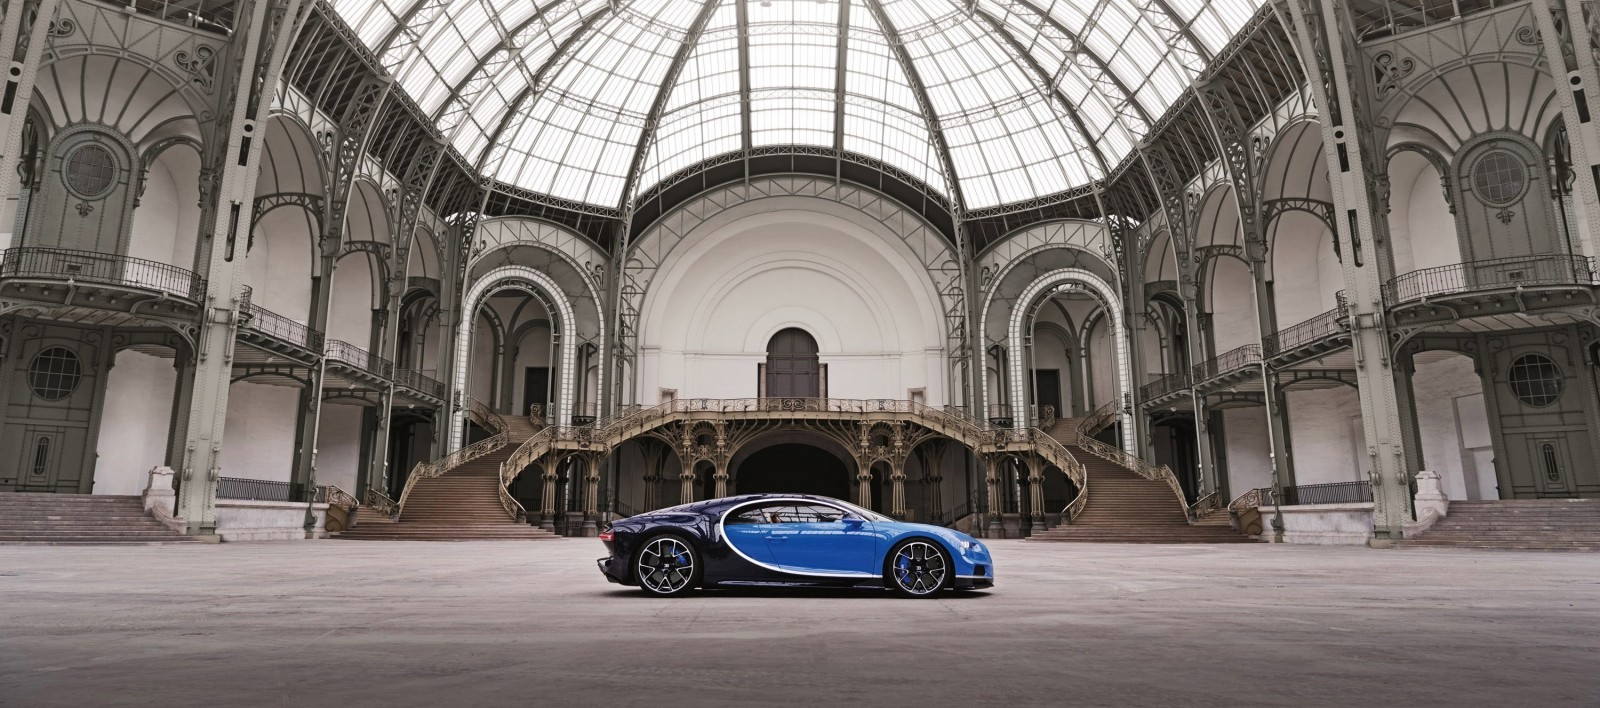 2017 bugatti chiron dynamic onyx grand palais photosets. Black Bedroom Furniture Sets. Home Design Ideas